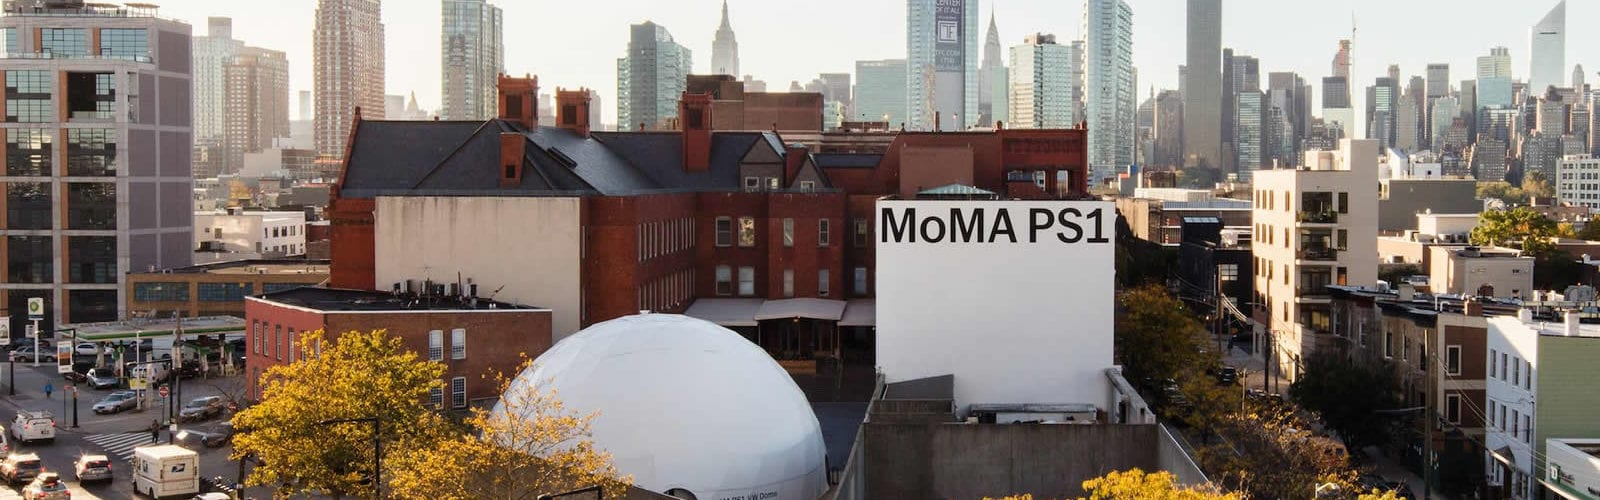 moma-ps1-art-moderne-expositions-une